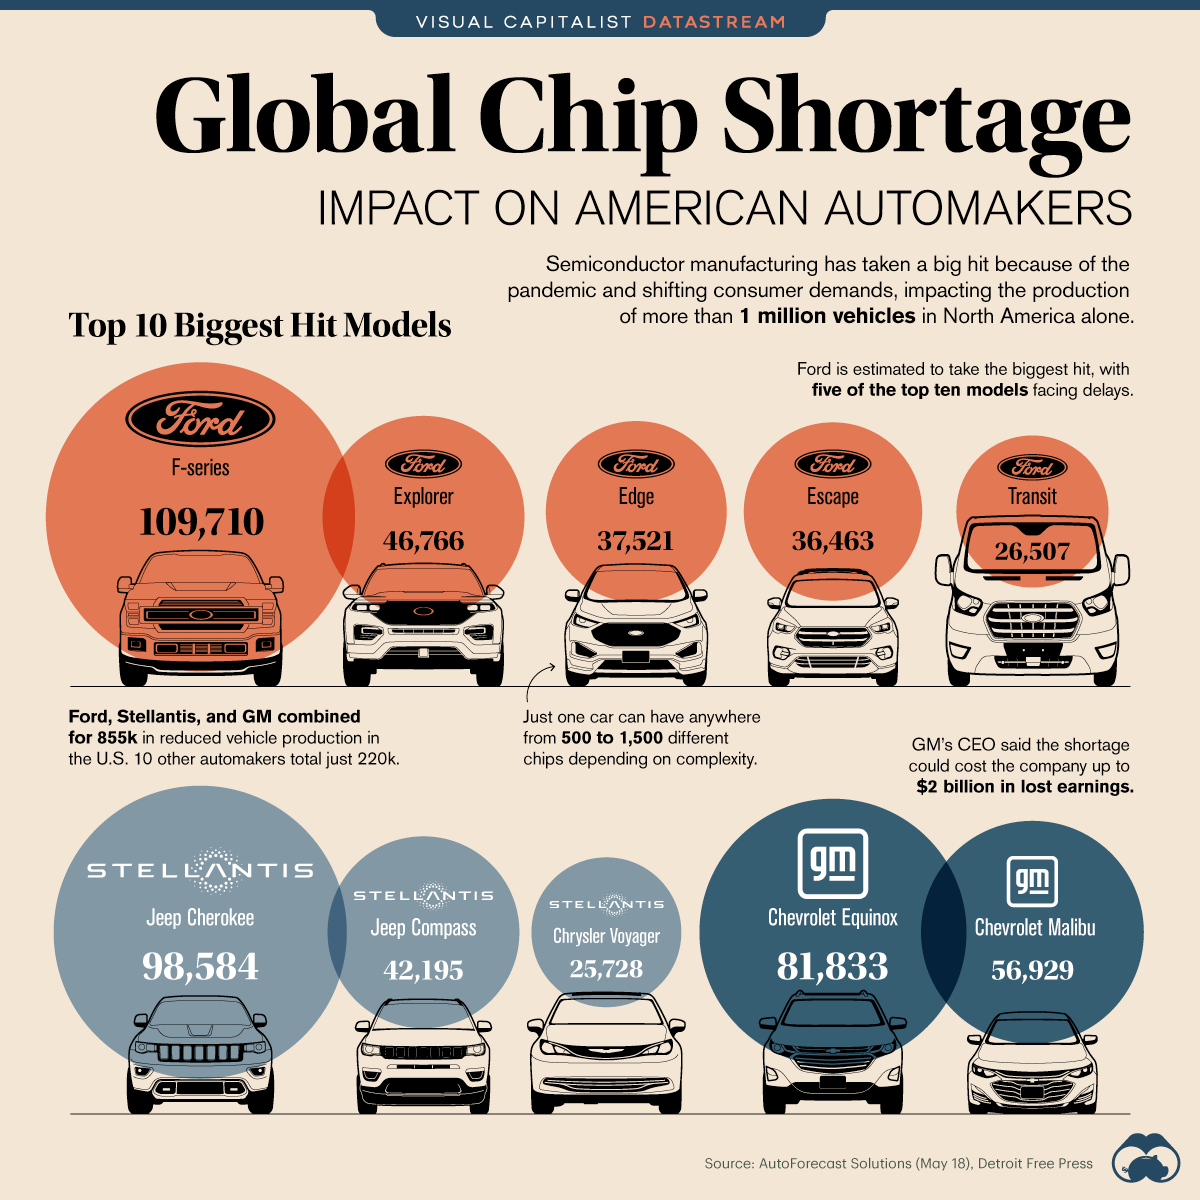 Global Chip Shortage Impact Automakers